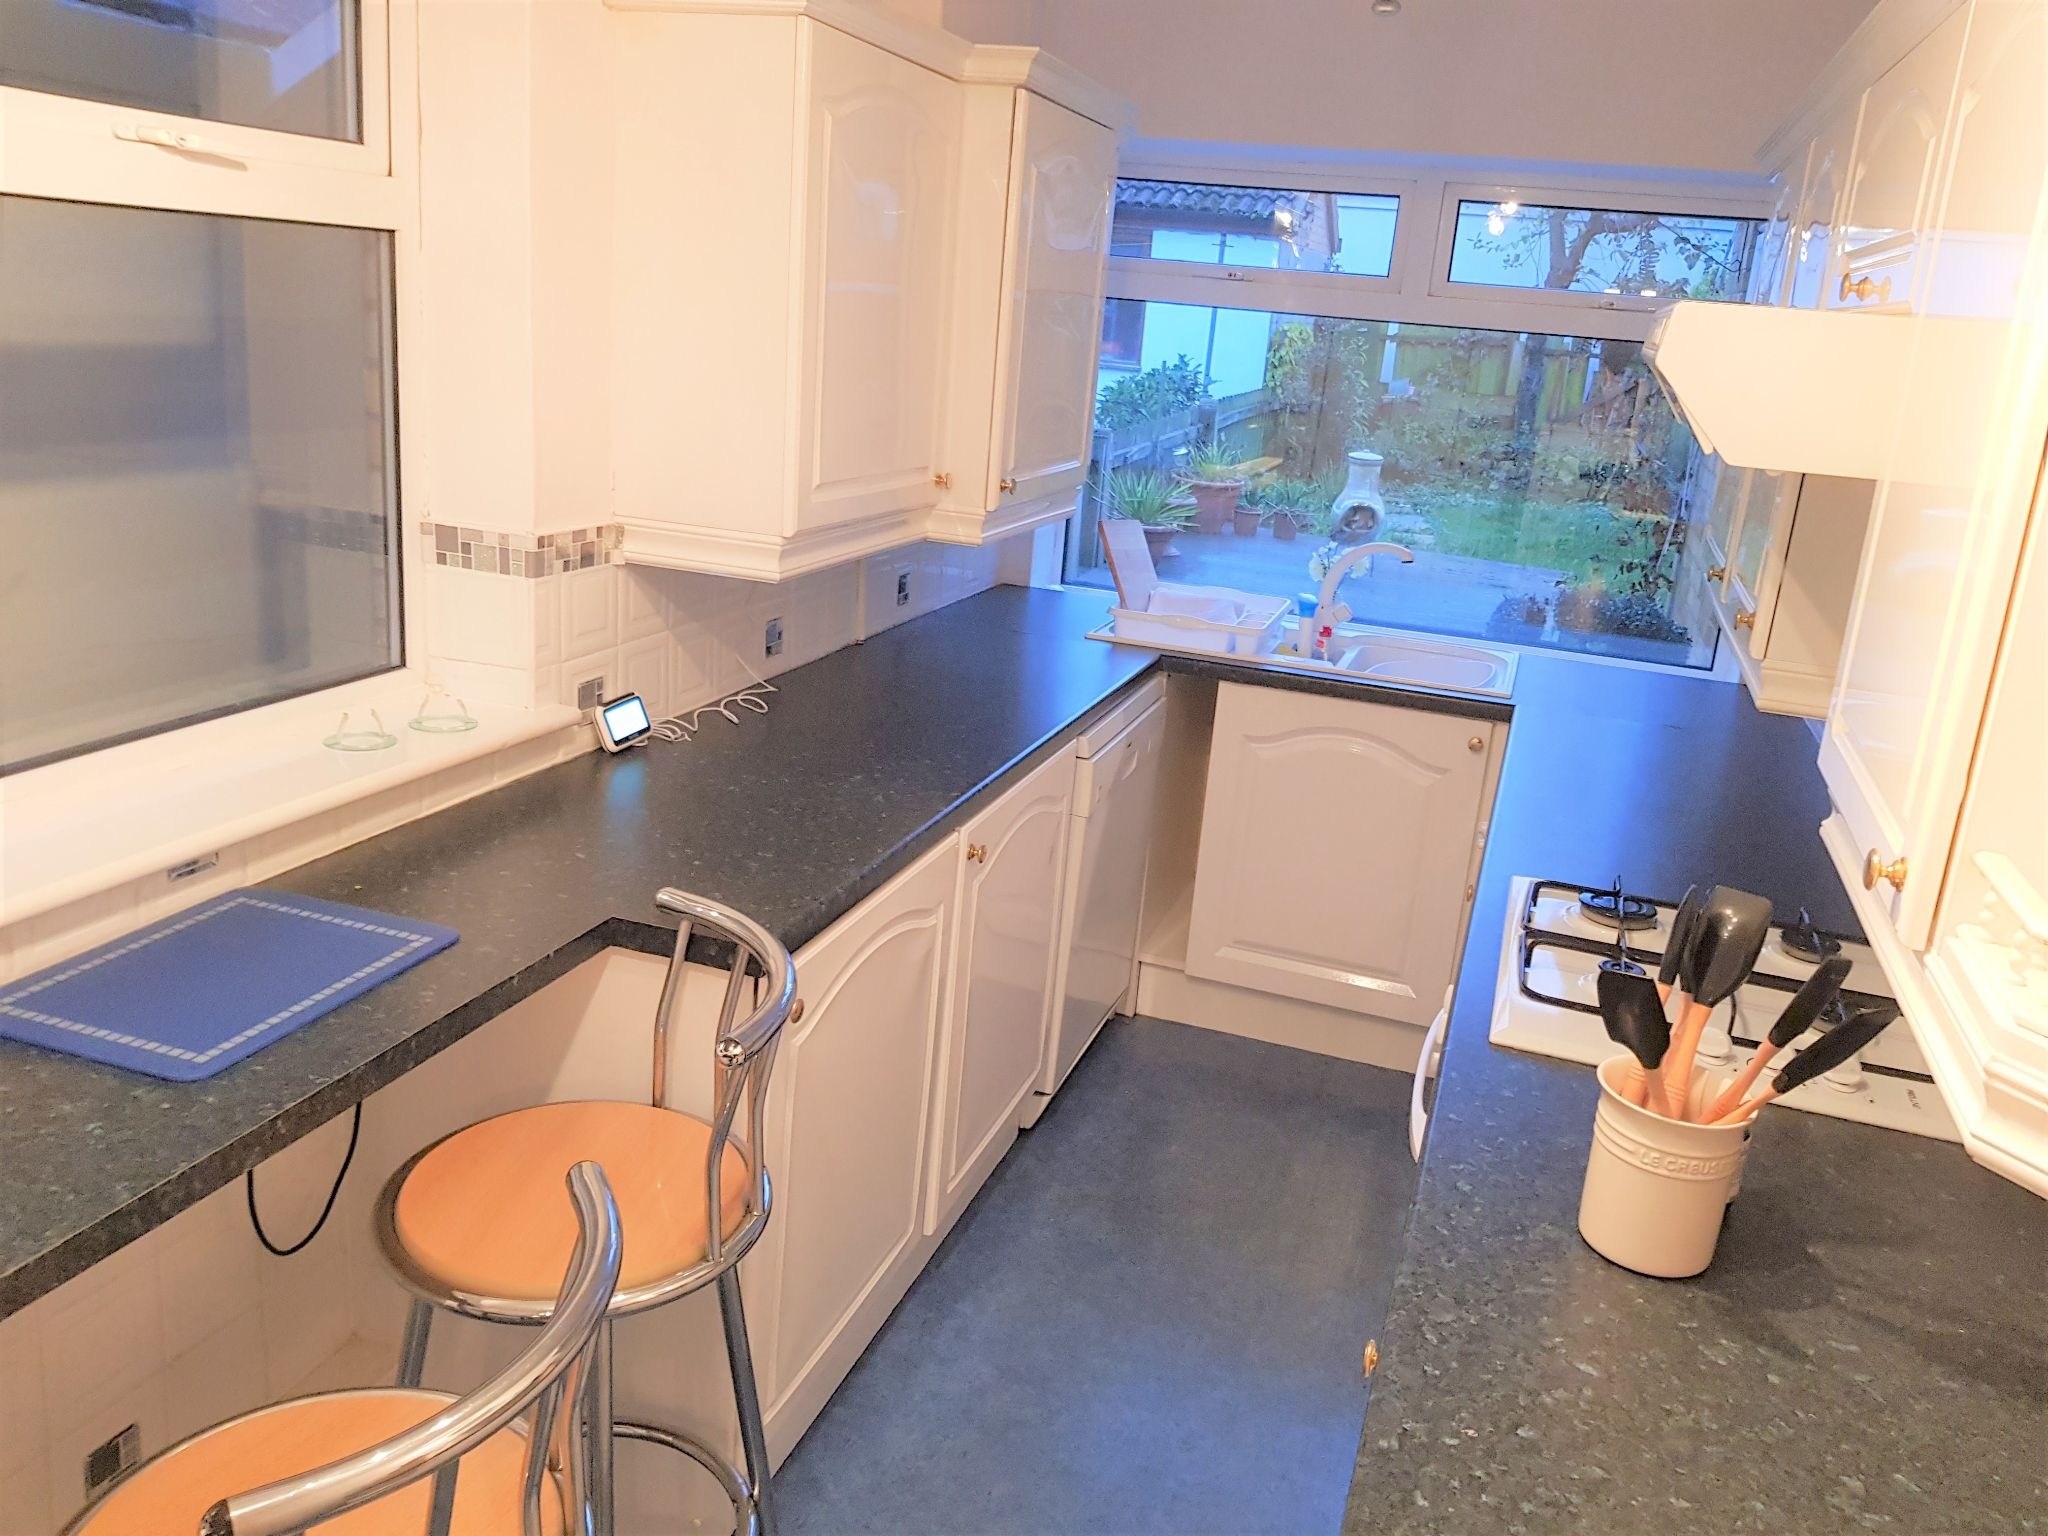 3 Bedroom Semi-detached House To Rent - Kitchen